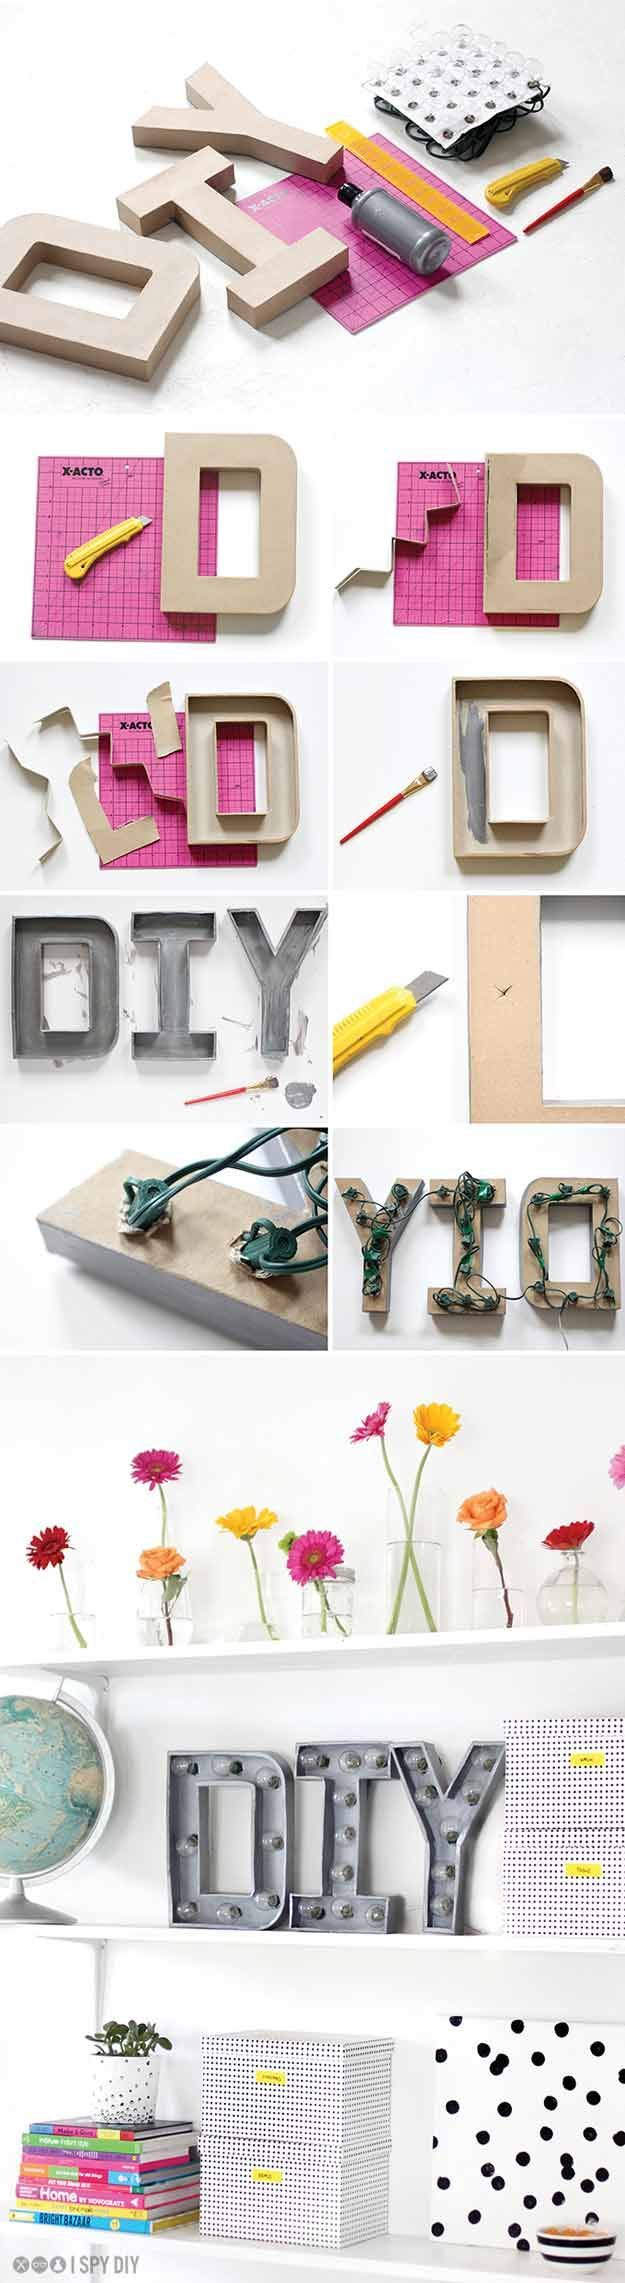 16 best youtube images on pinterest crafts gifts and home 37 insanely cute teen bedroom ideas for diy decor mitanshu Choice Image